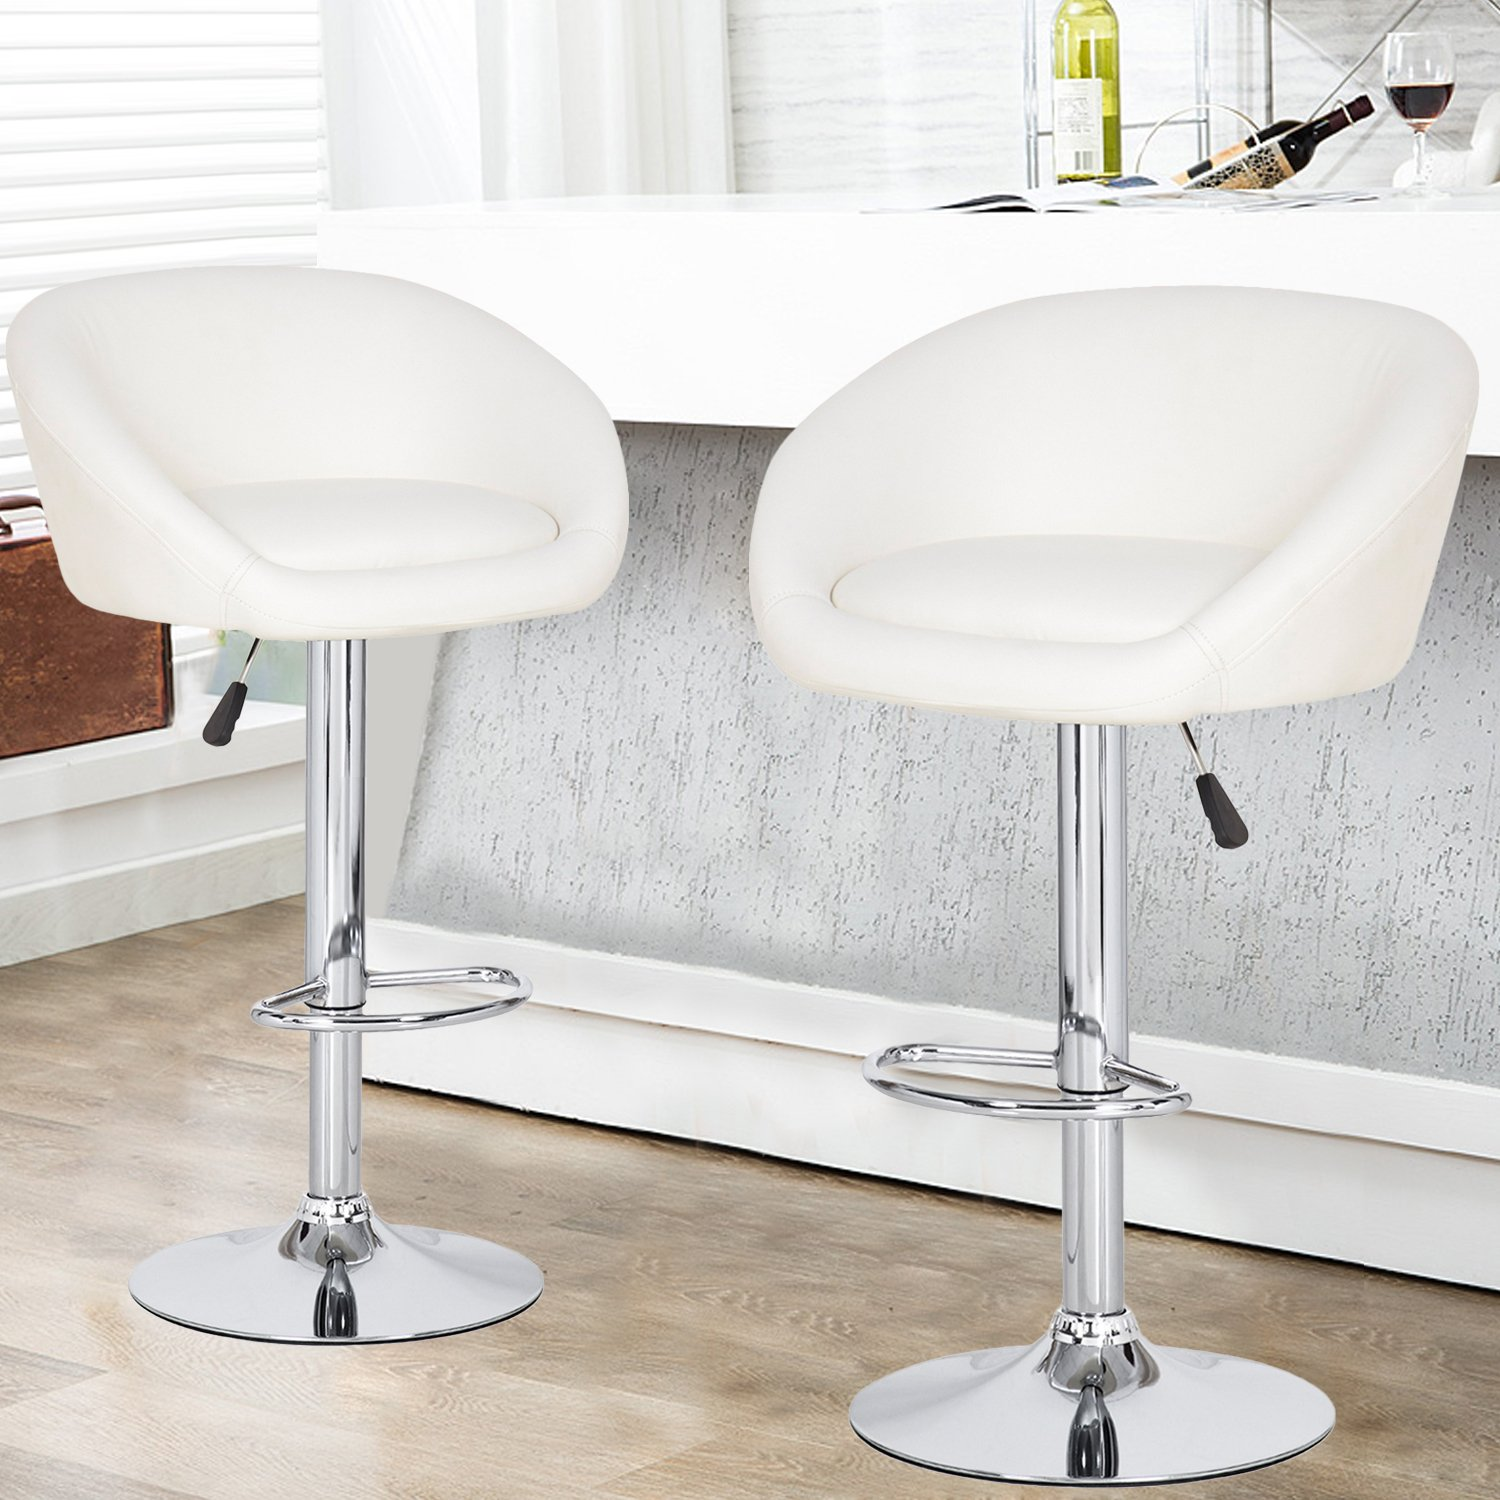 Joveco 360 Degree Swivel Adjustable Round Seat Barstool – Set of 2 White